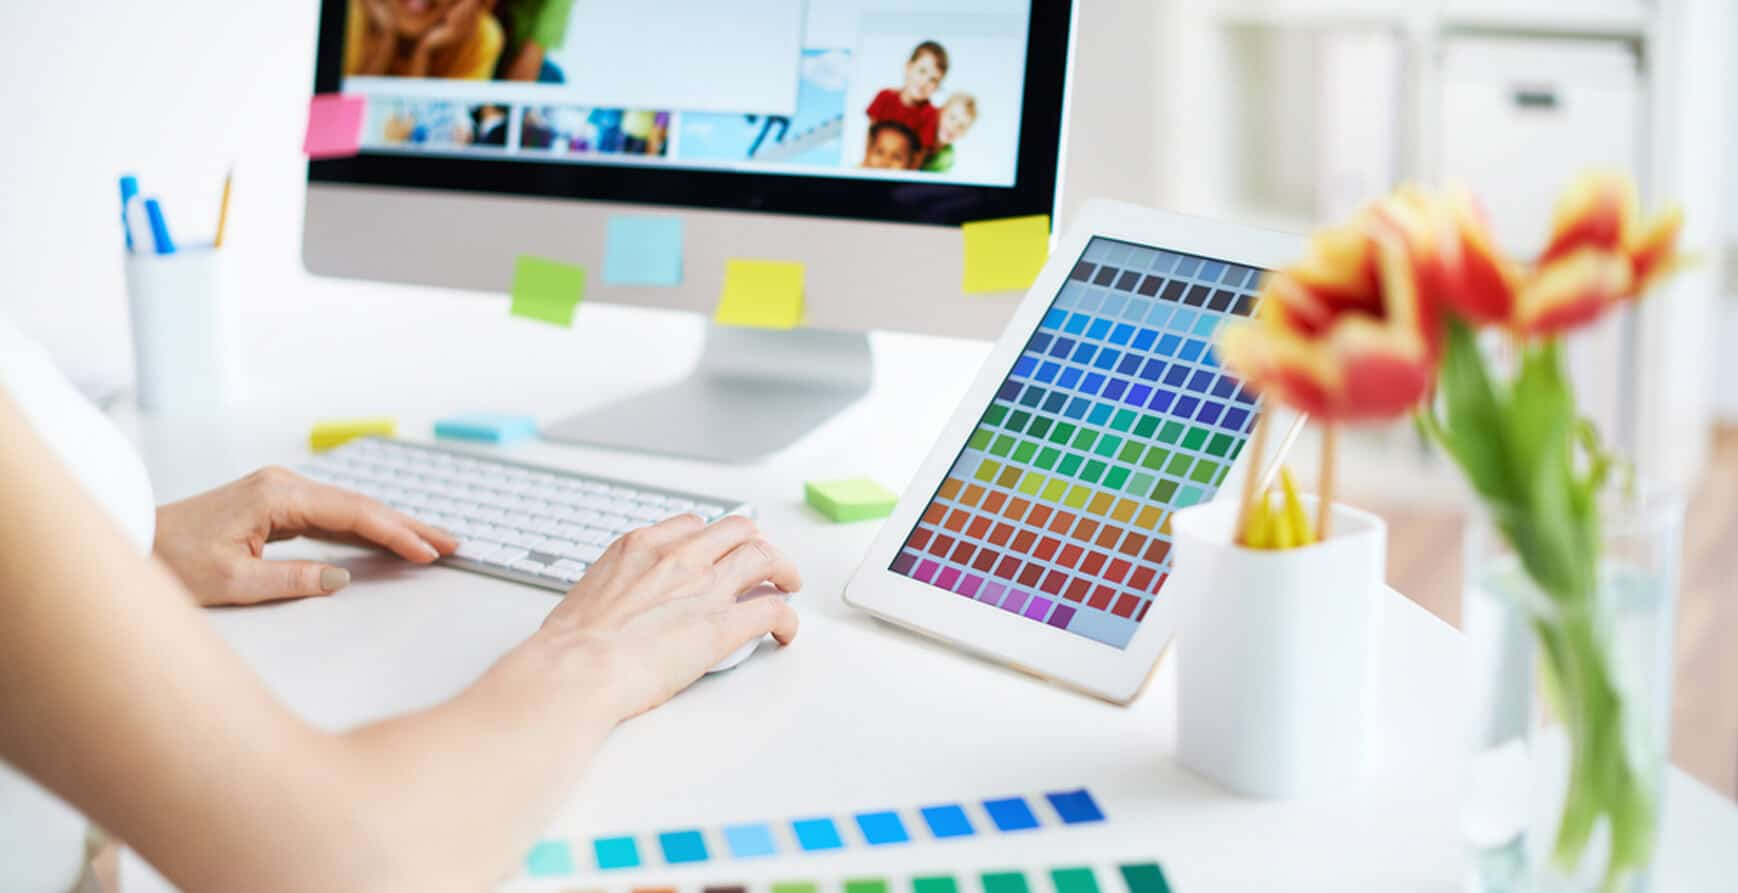 Where to source great images for your website